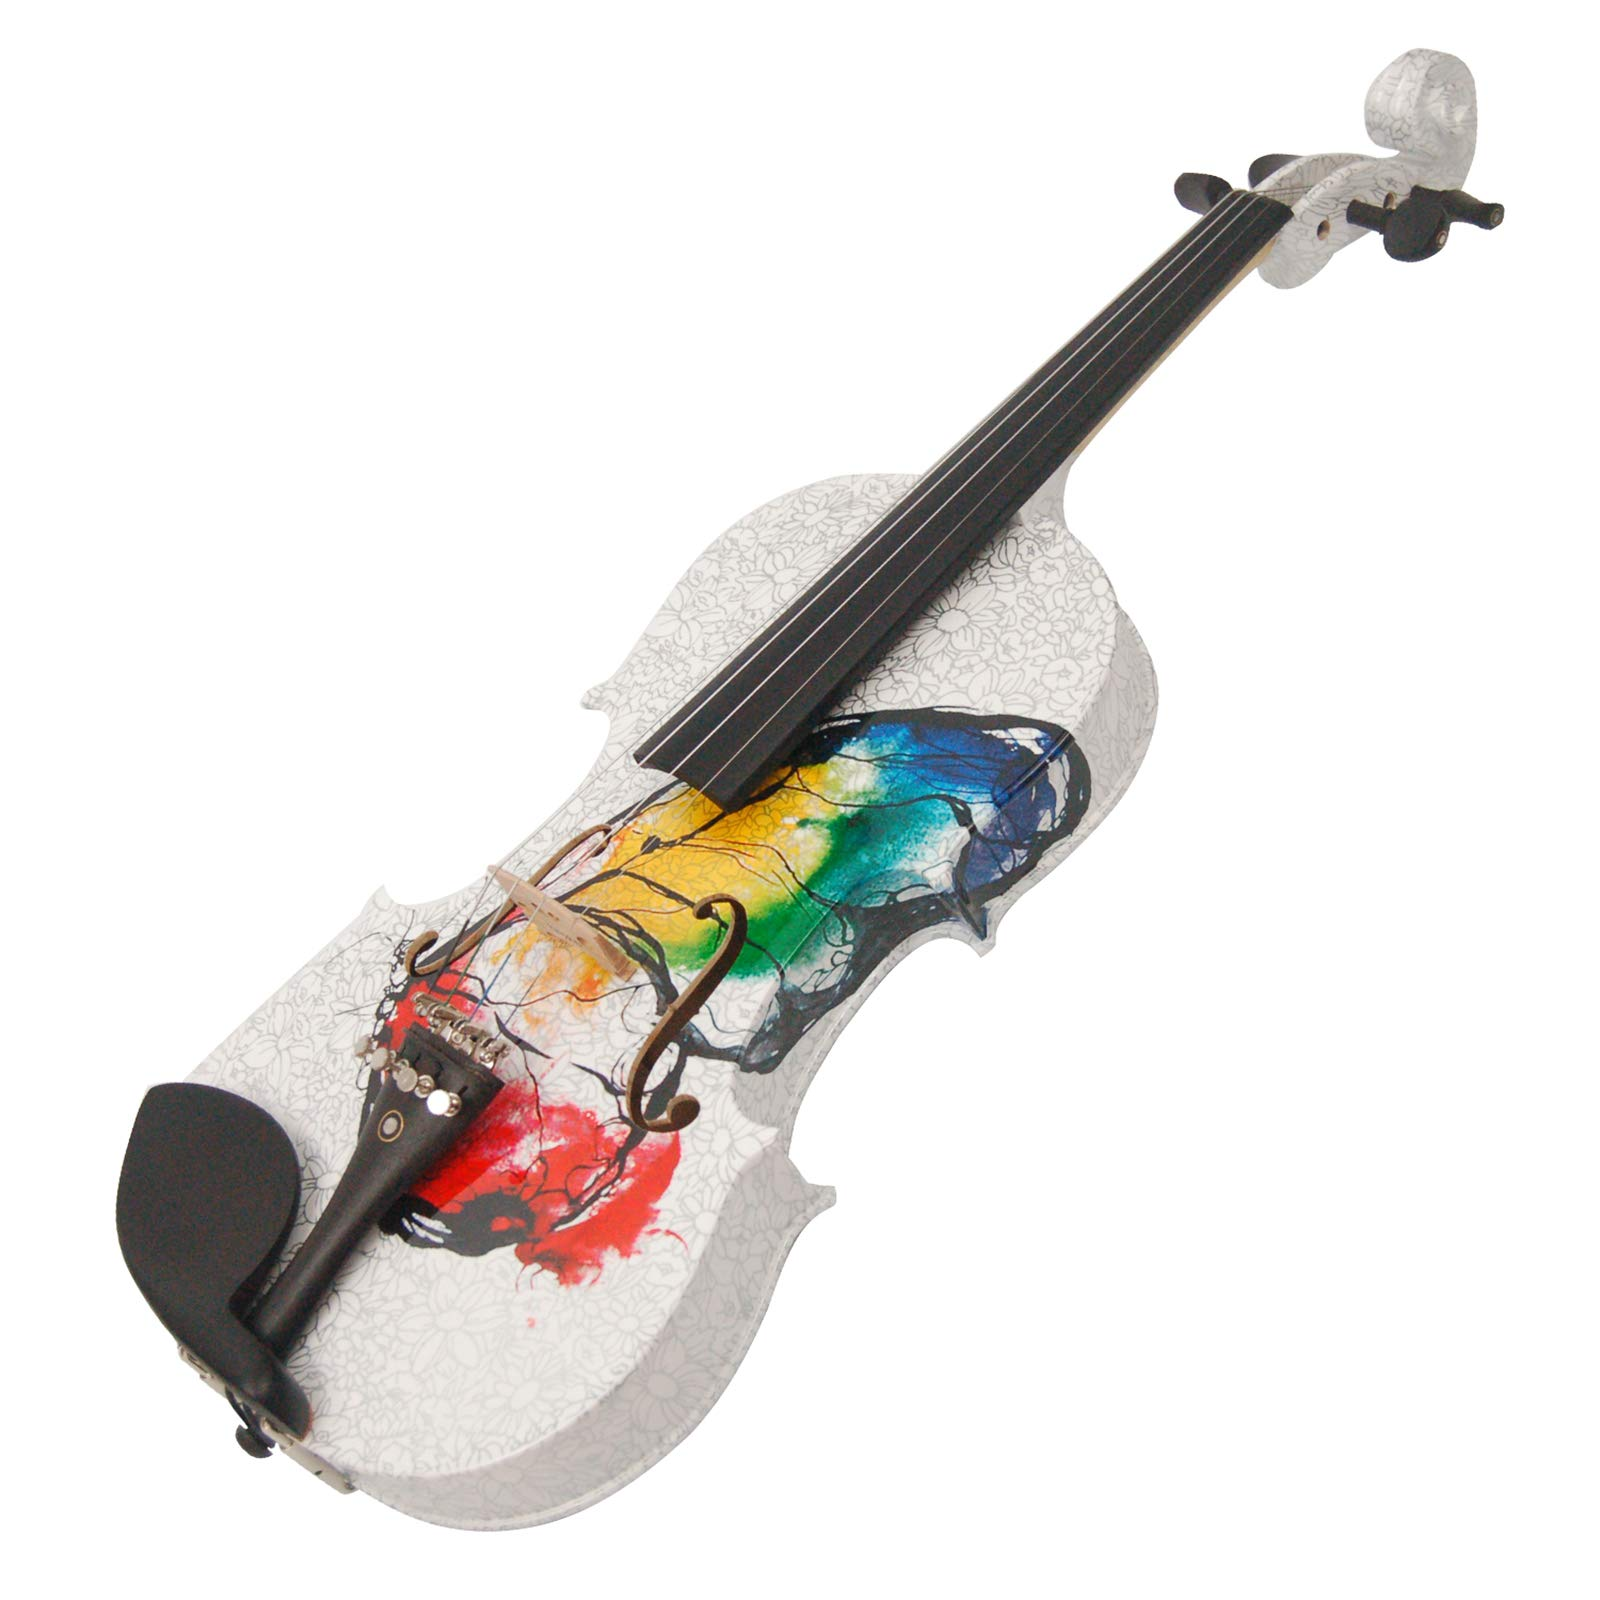 Kinglos 4/4 Butterfly Flower Colored Ebony Fitted Solid Wood Violin Kit with Case, Shoulder Rest, Bow, Rosin, Extra Bridge and Strings Full Size (NHS3002) by Kinglos (Image #3)